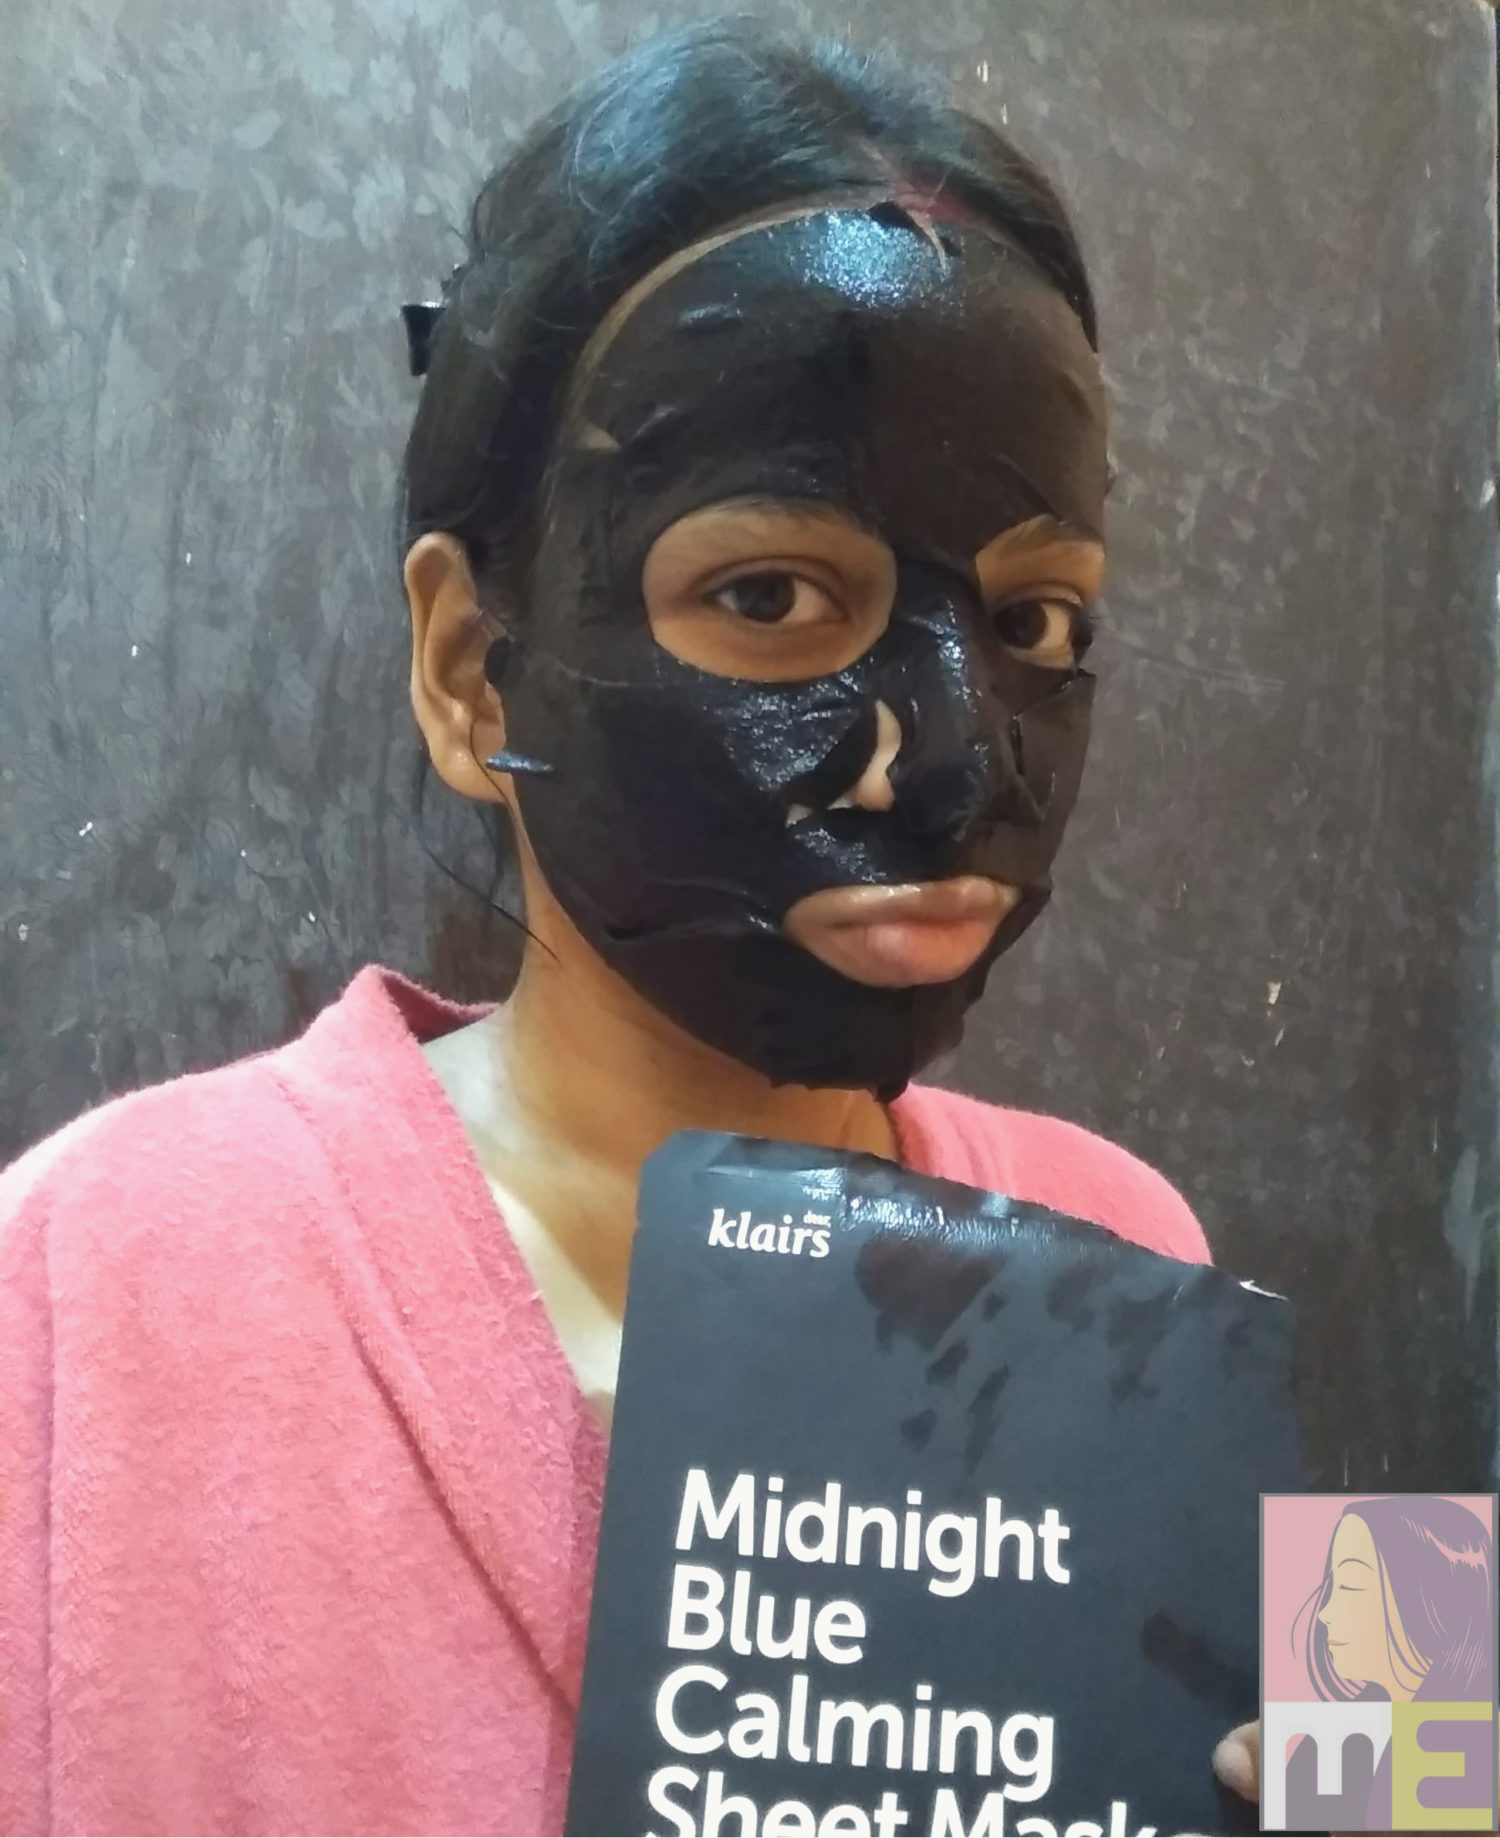 Midnight Blue Calming Sheet Mask by Klairs #6